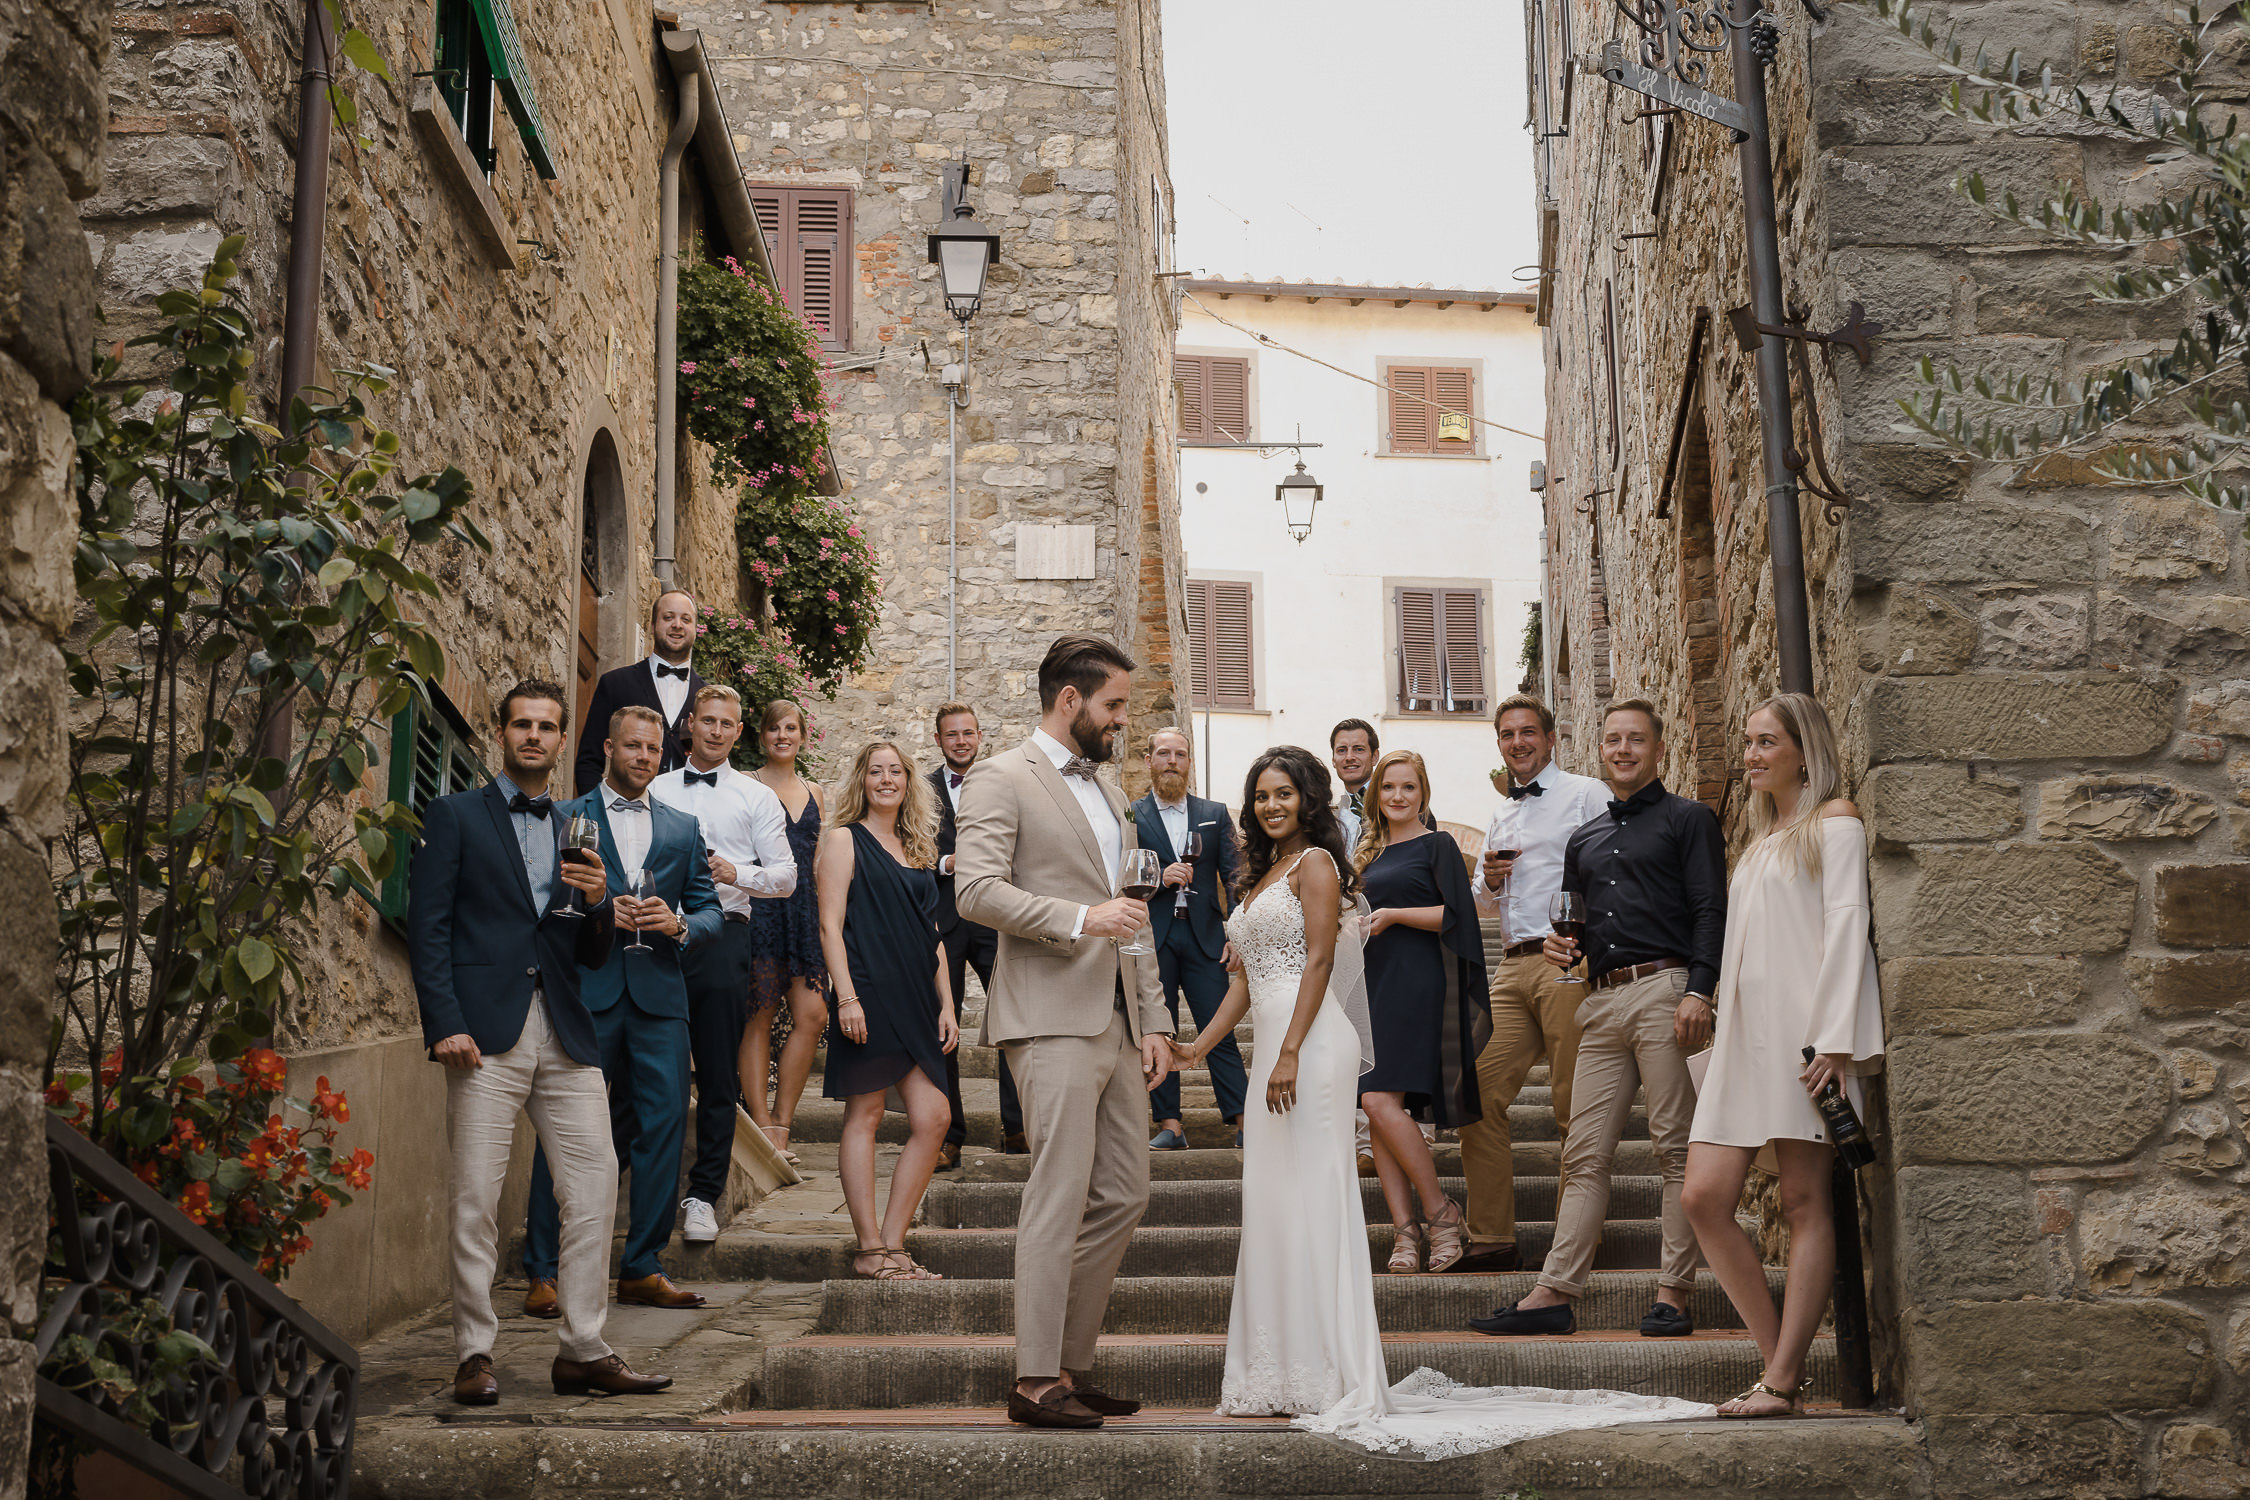 destination wedding tuscany by mark hadden amsterdam wedding photographer, bridal party group shot